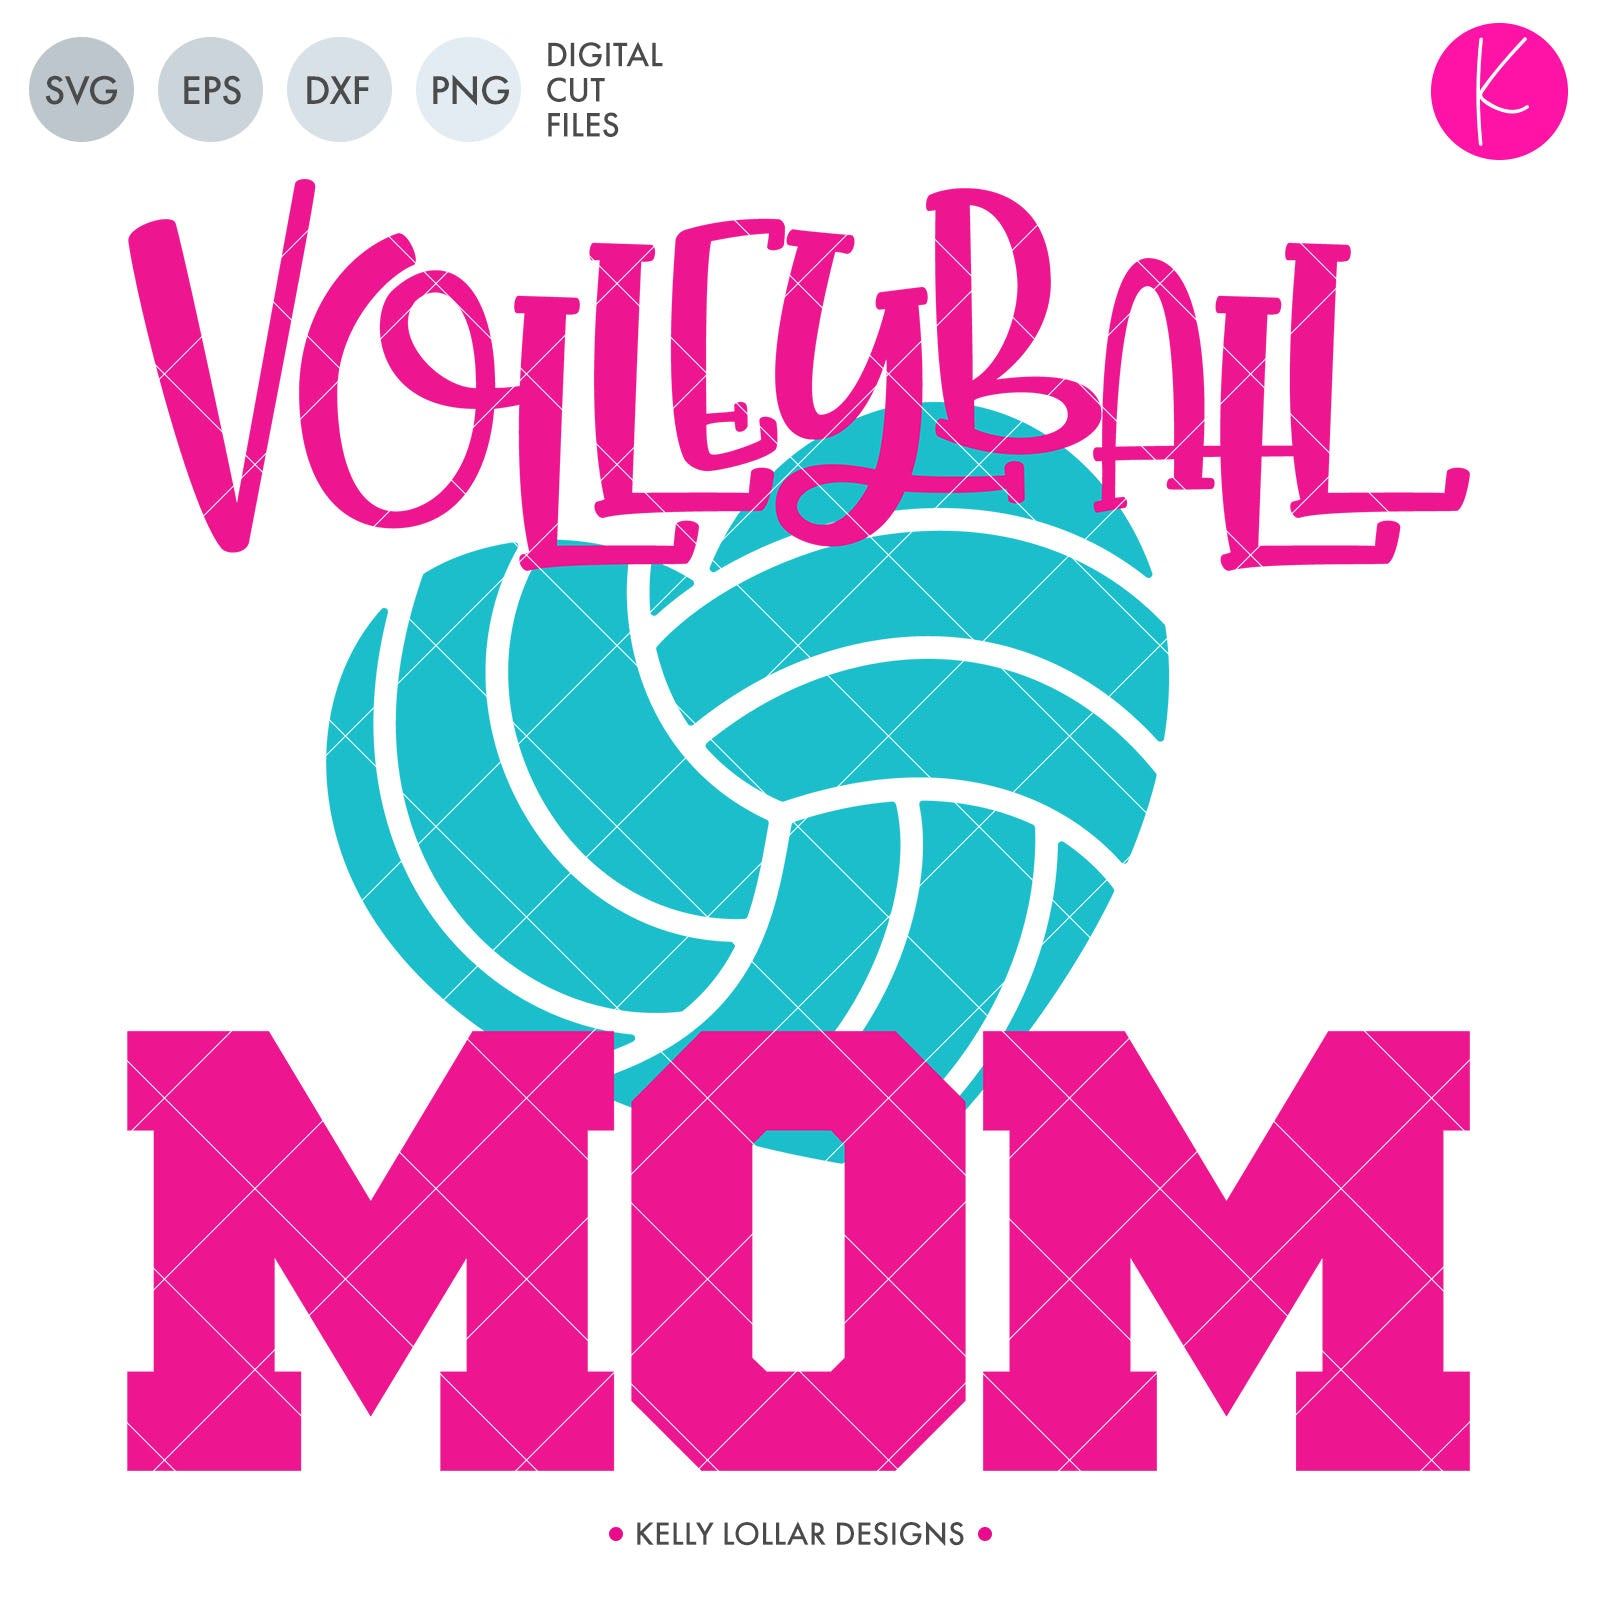 Volleyball Mom | SVG DXF EPS PNG Cut Files Volleyball Mom Quote with Heart Shaped Volleyball | SVG DXF PNG Cut Files 1 file for each format each piece welded separately to save space while cutting volleyball heart can